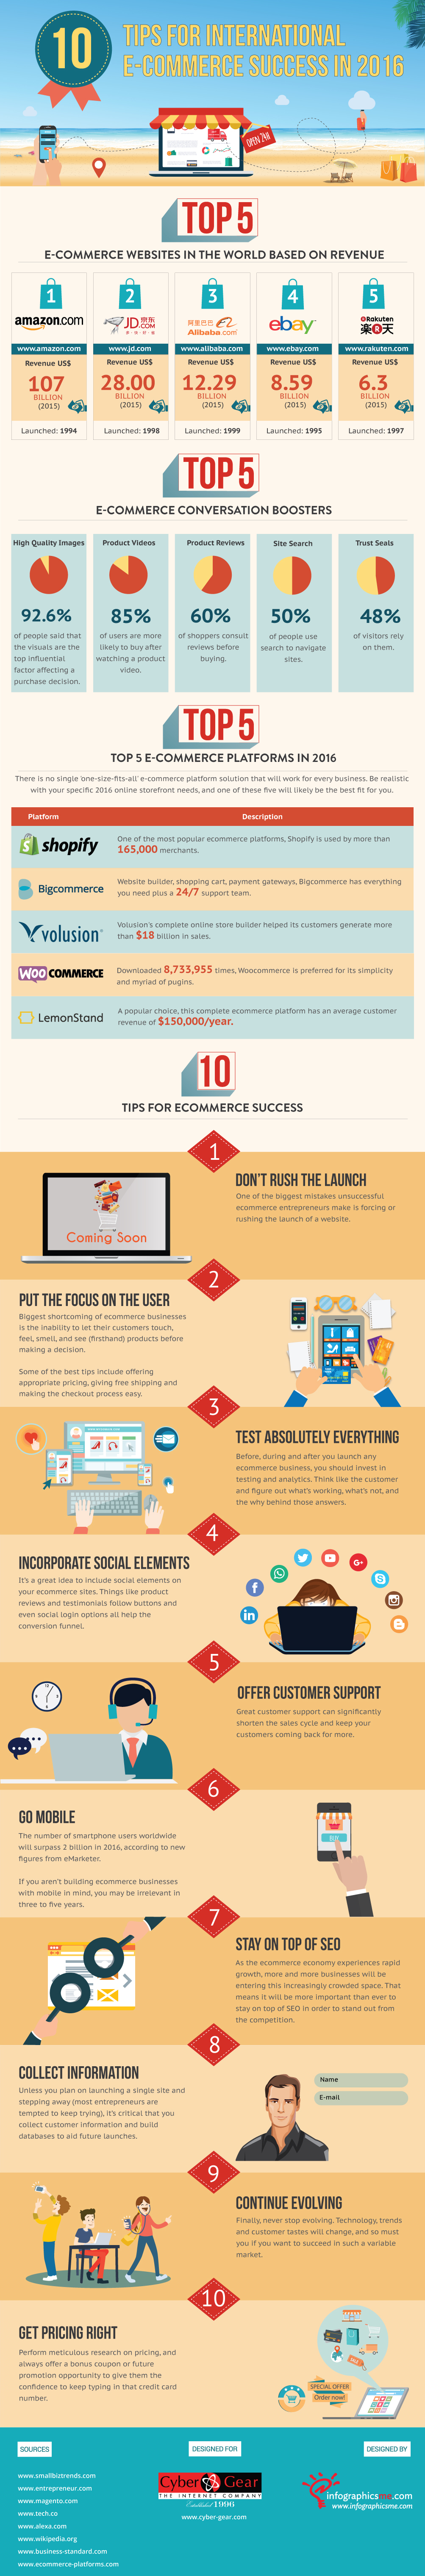 10 Tips for International E-Commerce Success in 2016